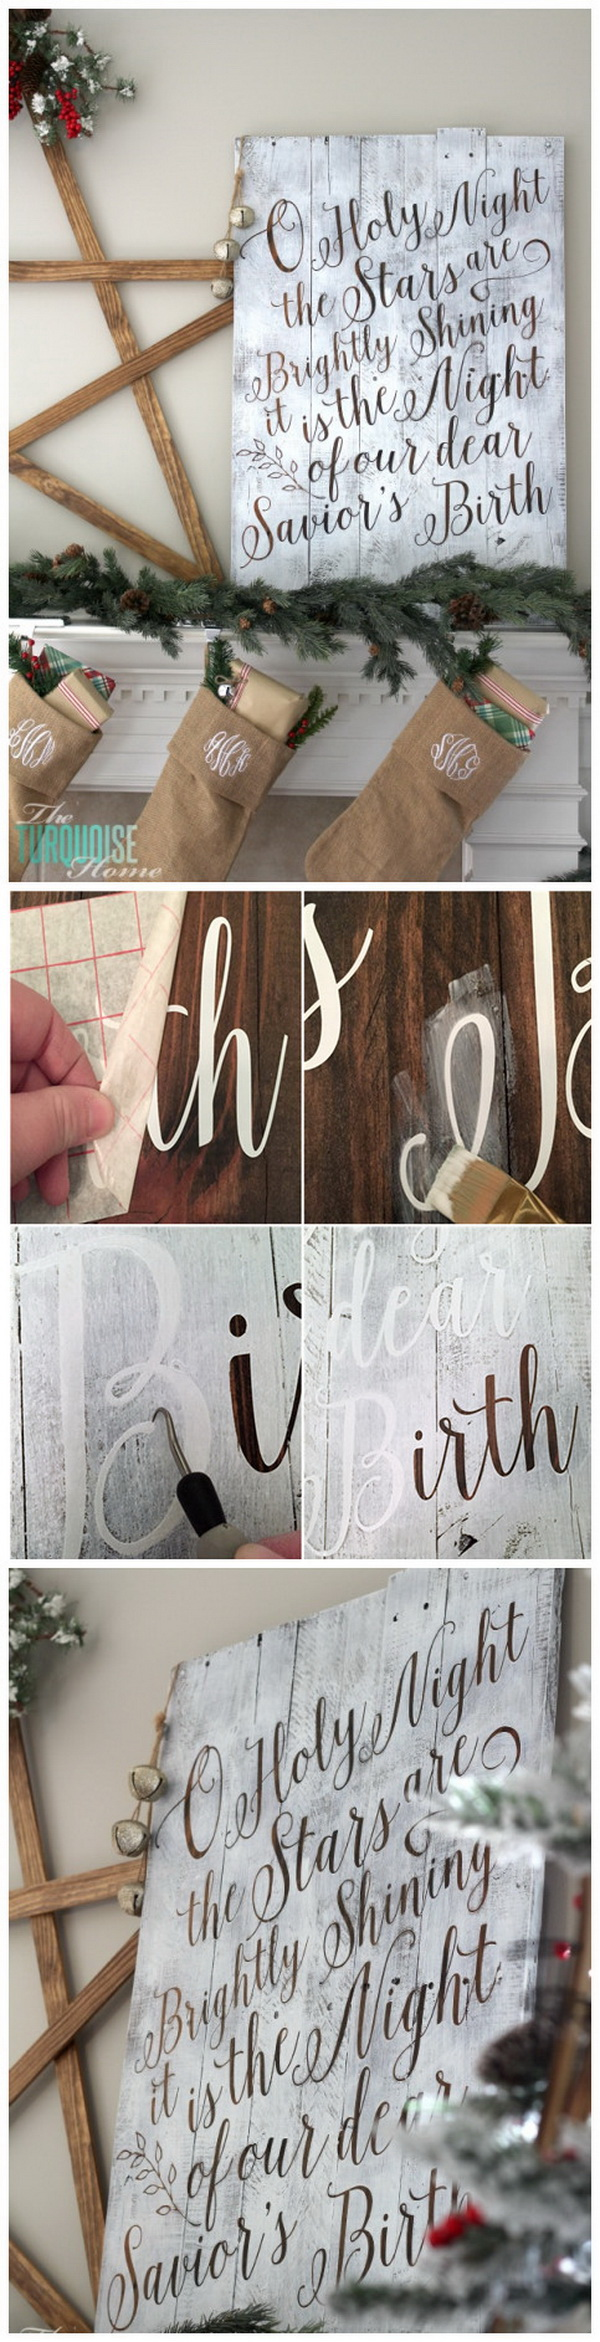 DIY Christmas Stenciled Lettered Pallet Sign. This Christmas stenciled lettered pallet sign is grogeous, and it gives your house that desired farmhouse feel.